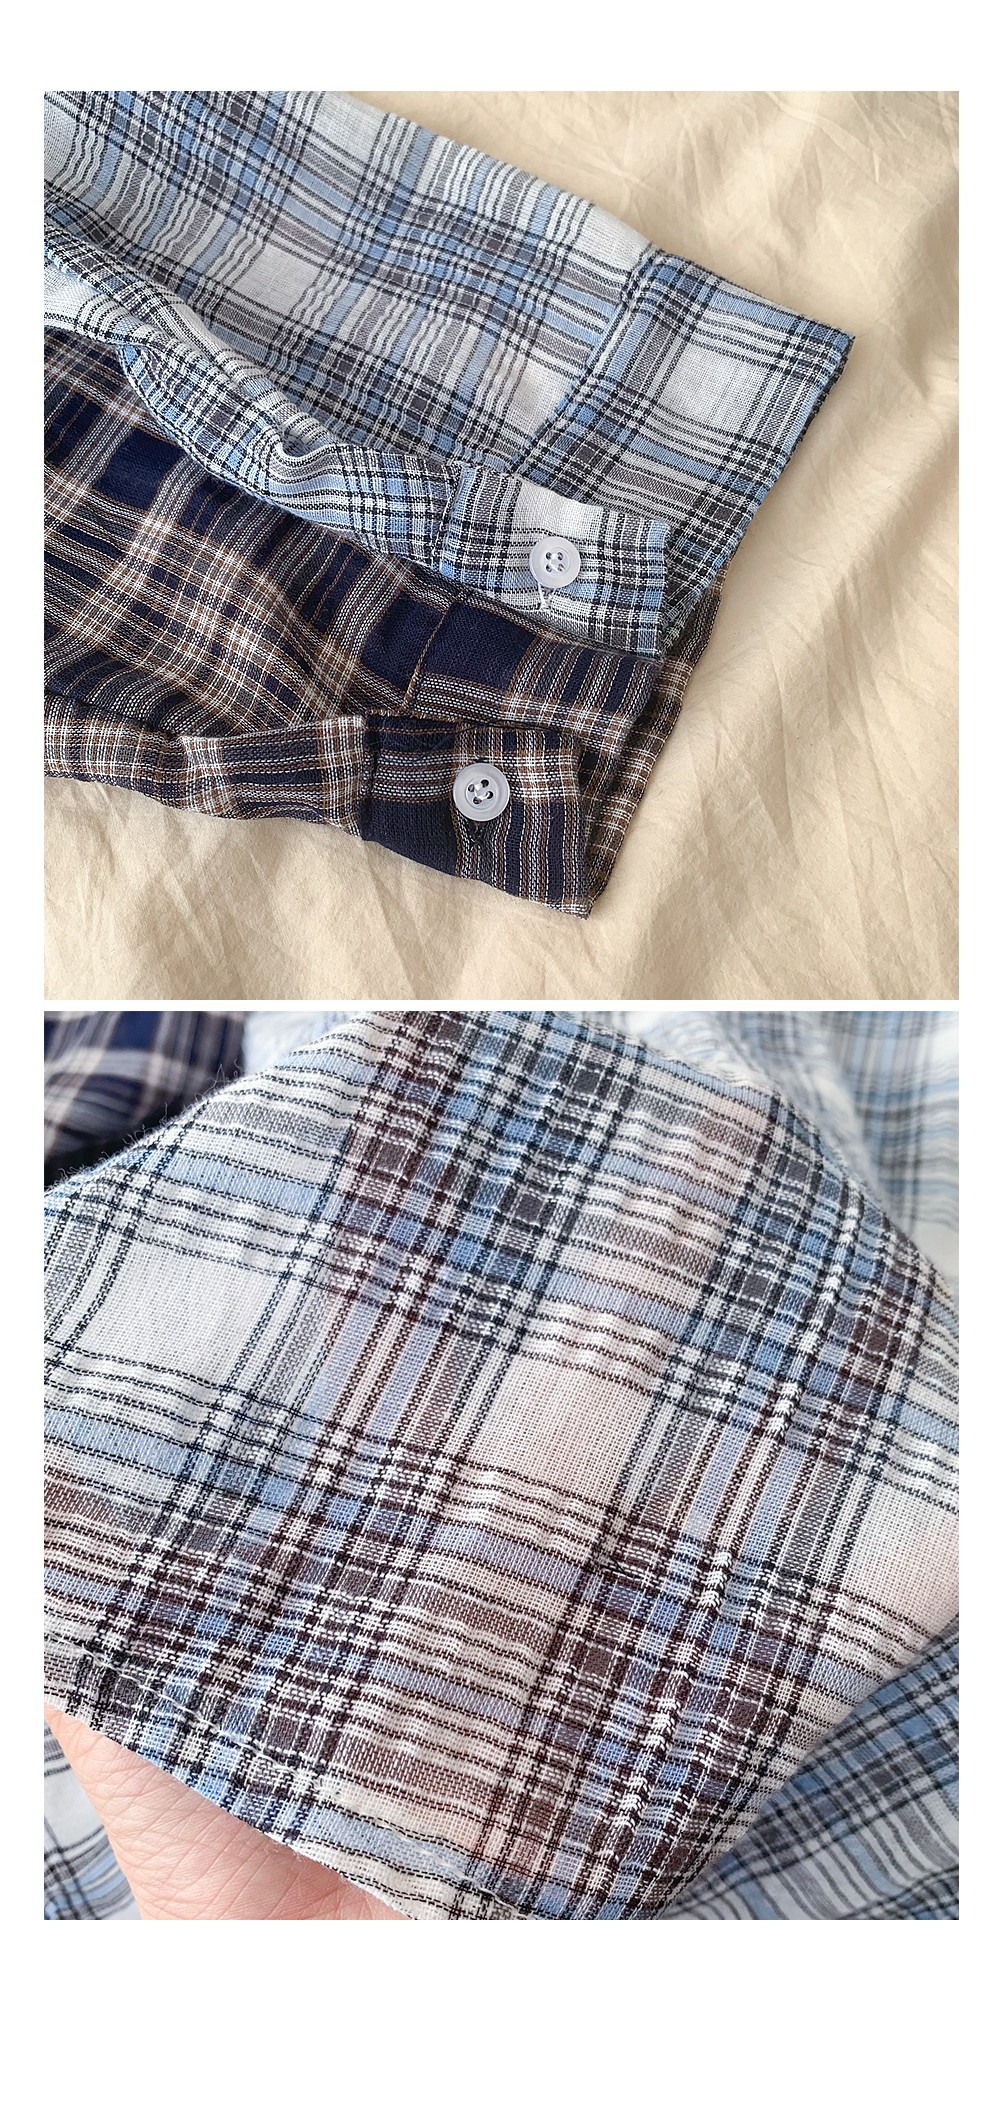 Comma check shirt, thin long sleeve, recommended as a summer shirt :D